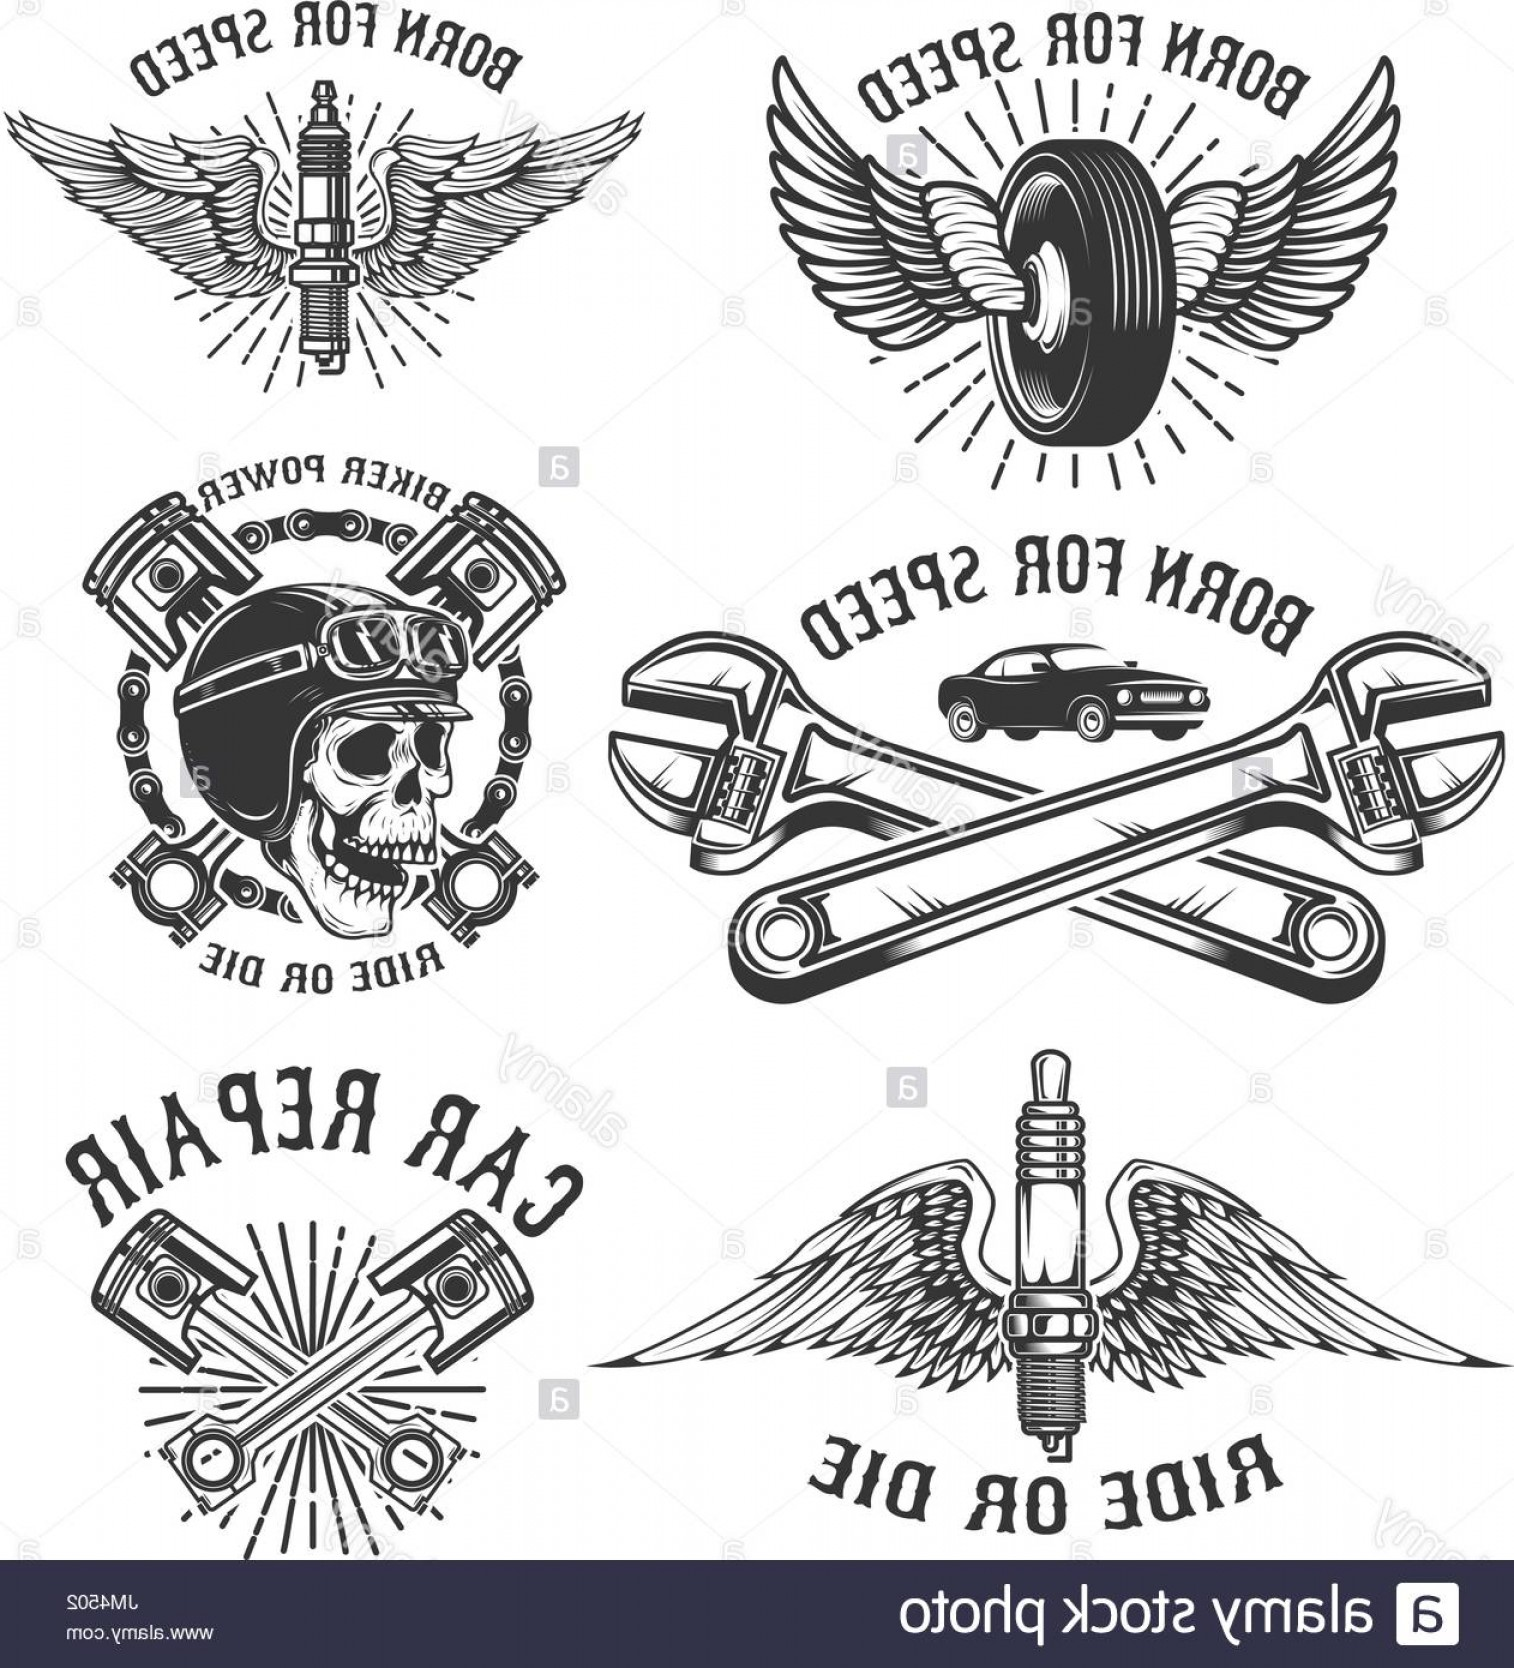 Detroit Red Wings Vector Art: Stock Photo Set Of Car Repair And Racing Emblems Spark Plug With Wings Racer Skull